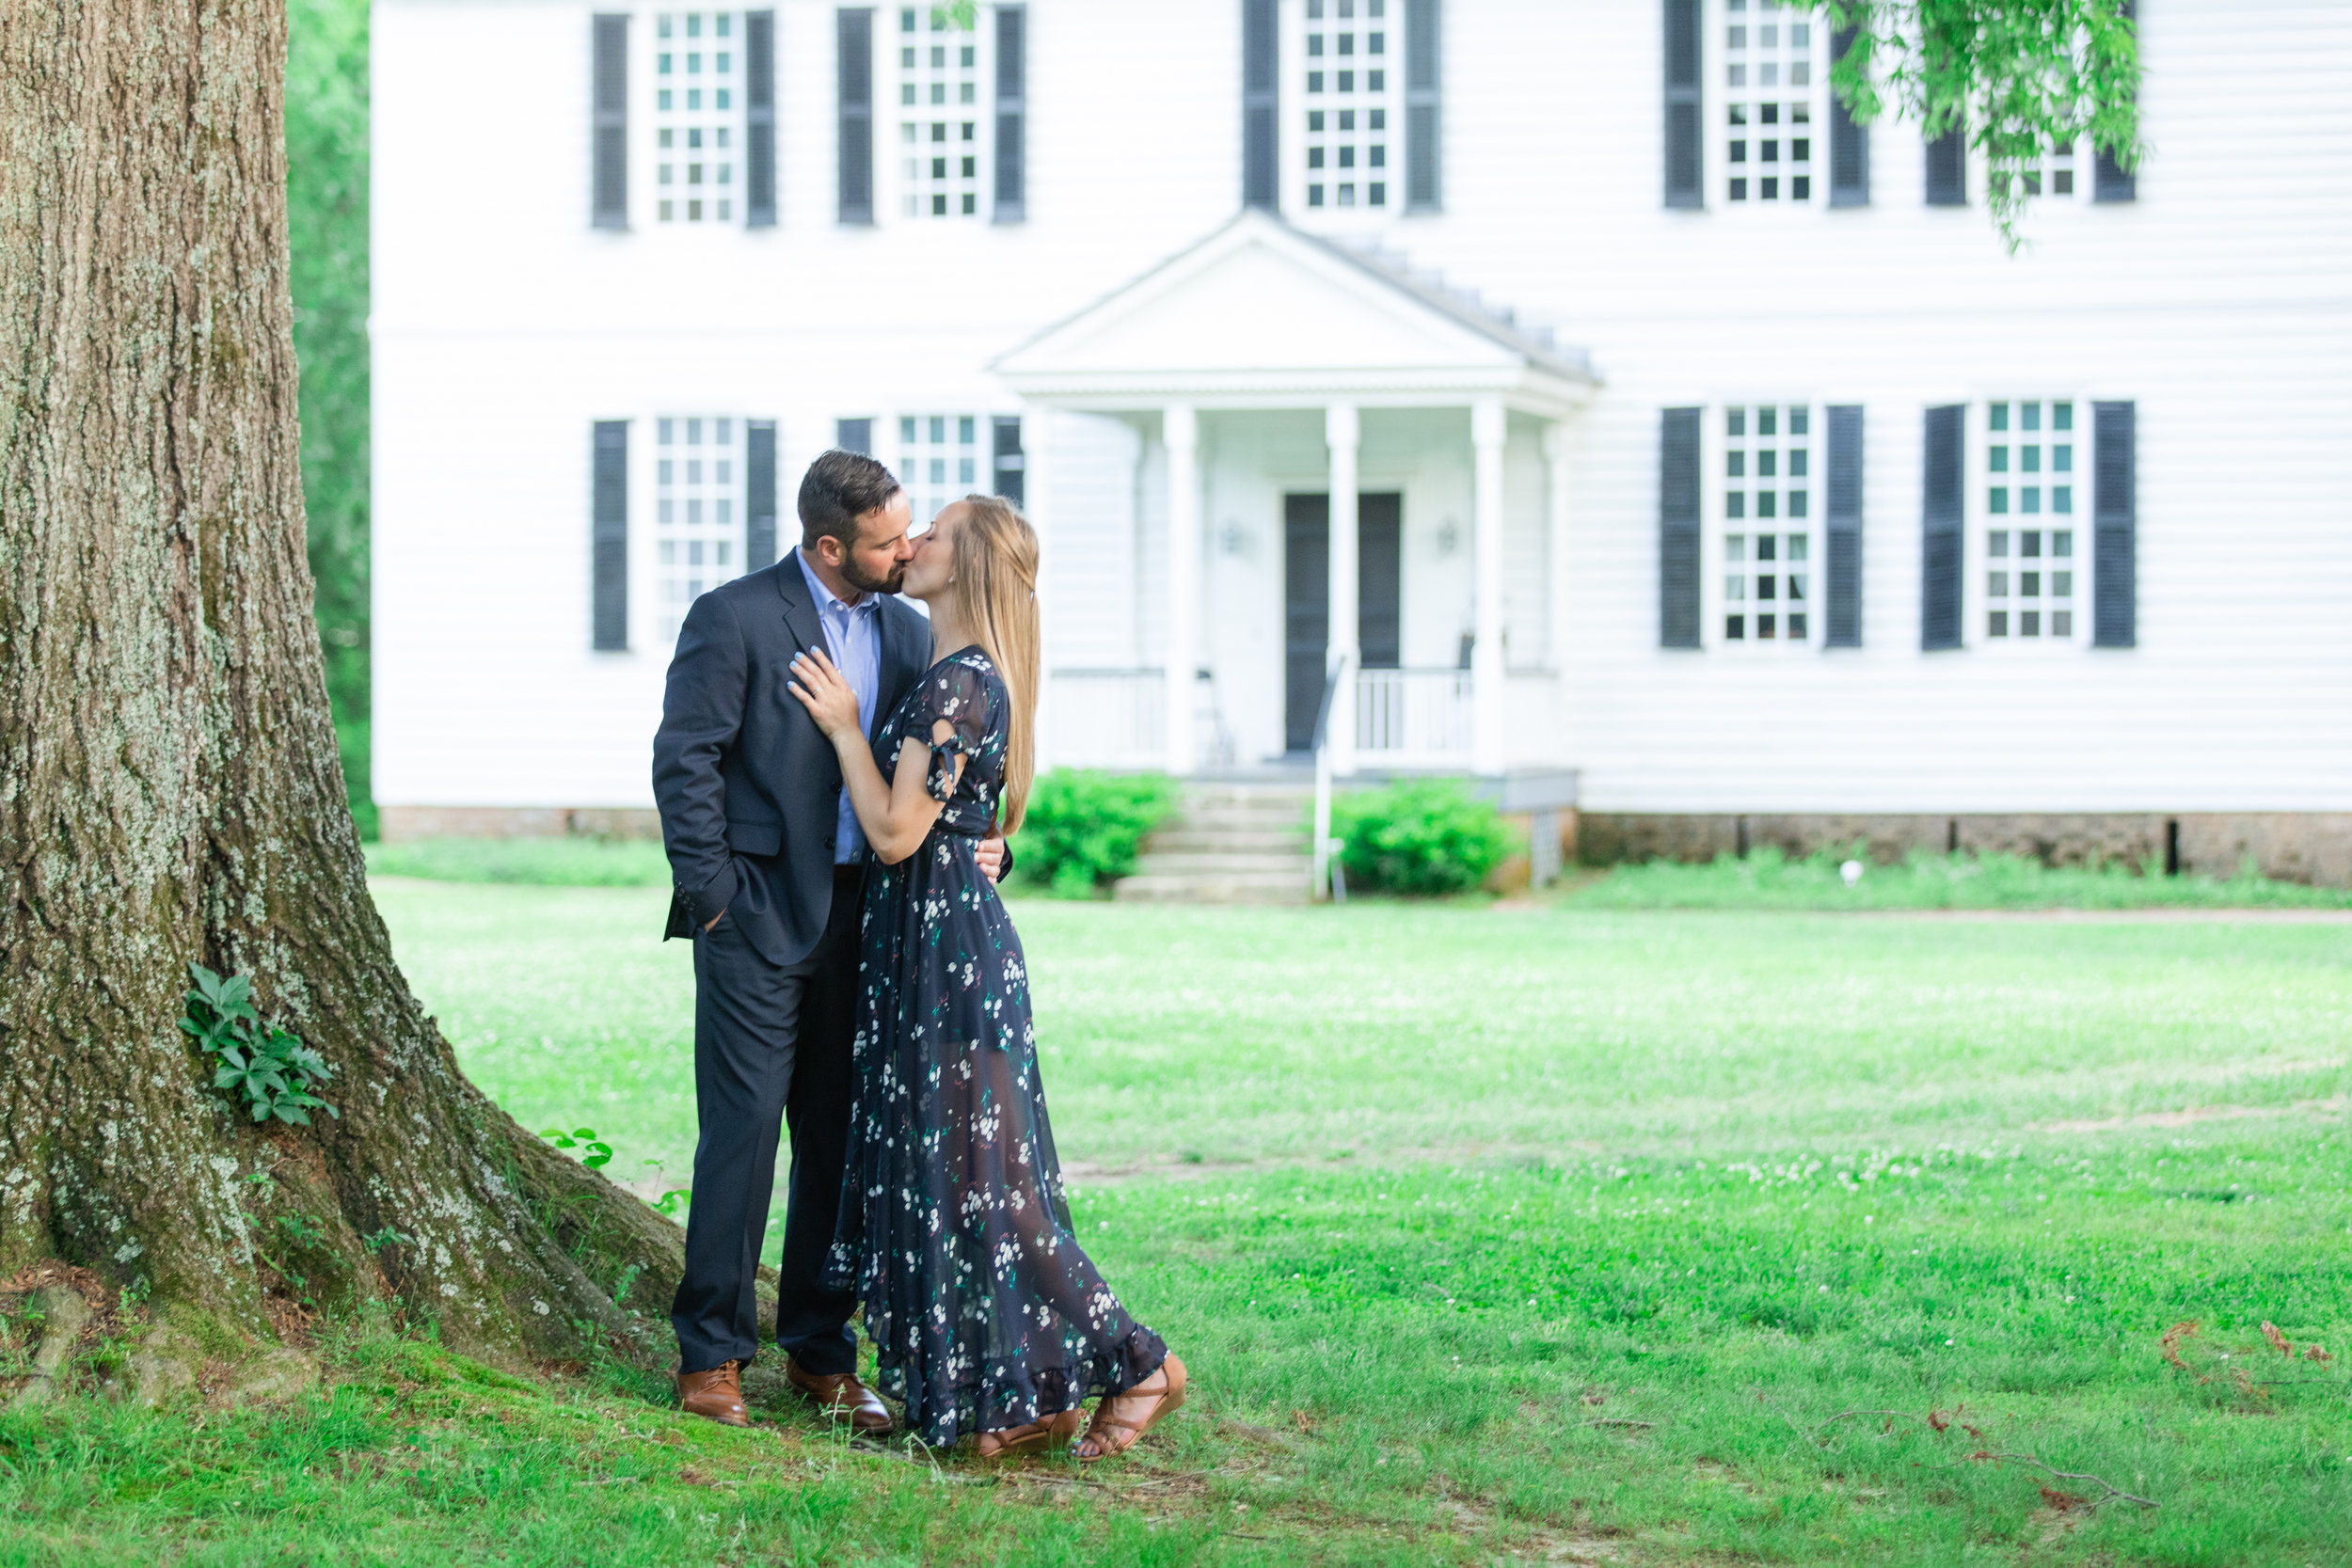 mjmp tuckahoe plantation engagement session photo-38.jpg